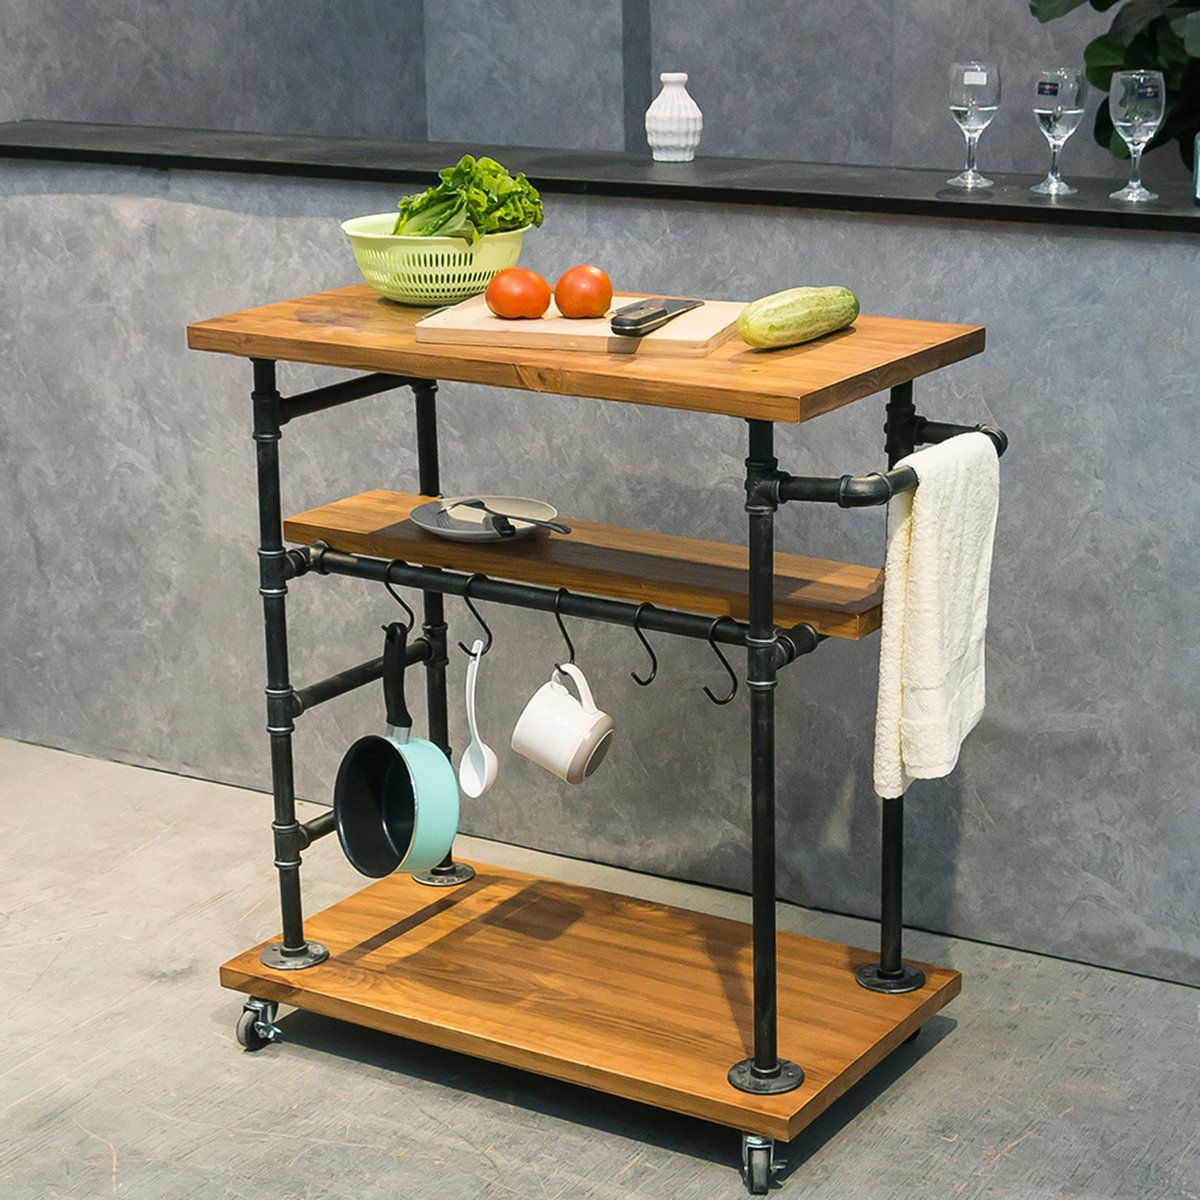 industrial portable kitchen coffee carts for the home wine bar beverage coffee cart portable on kitchen island ideas kitchen bar carts id=92611